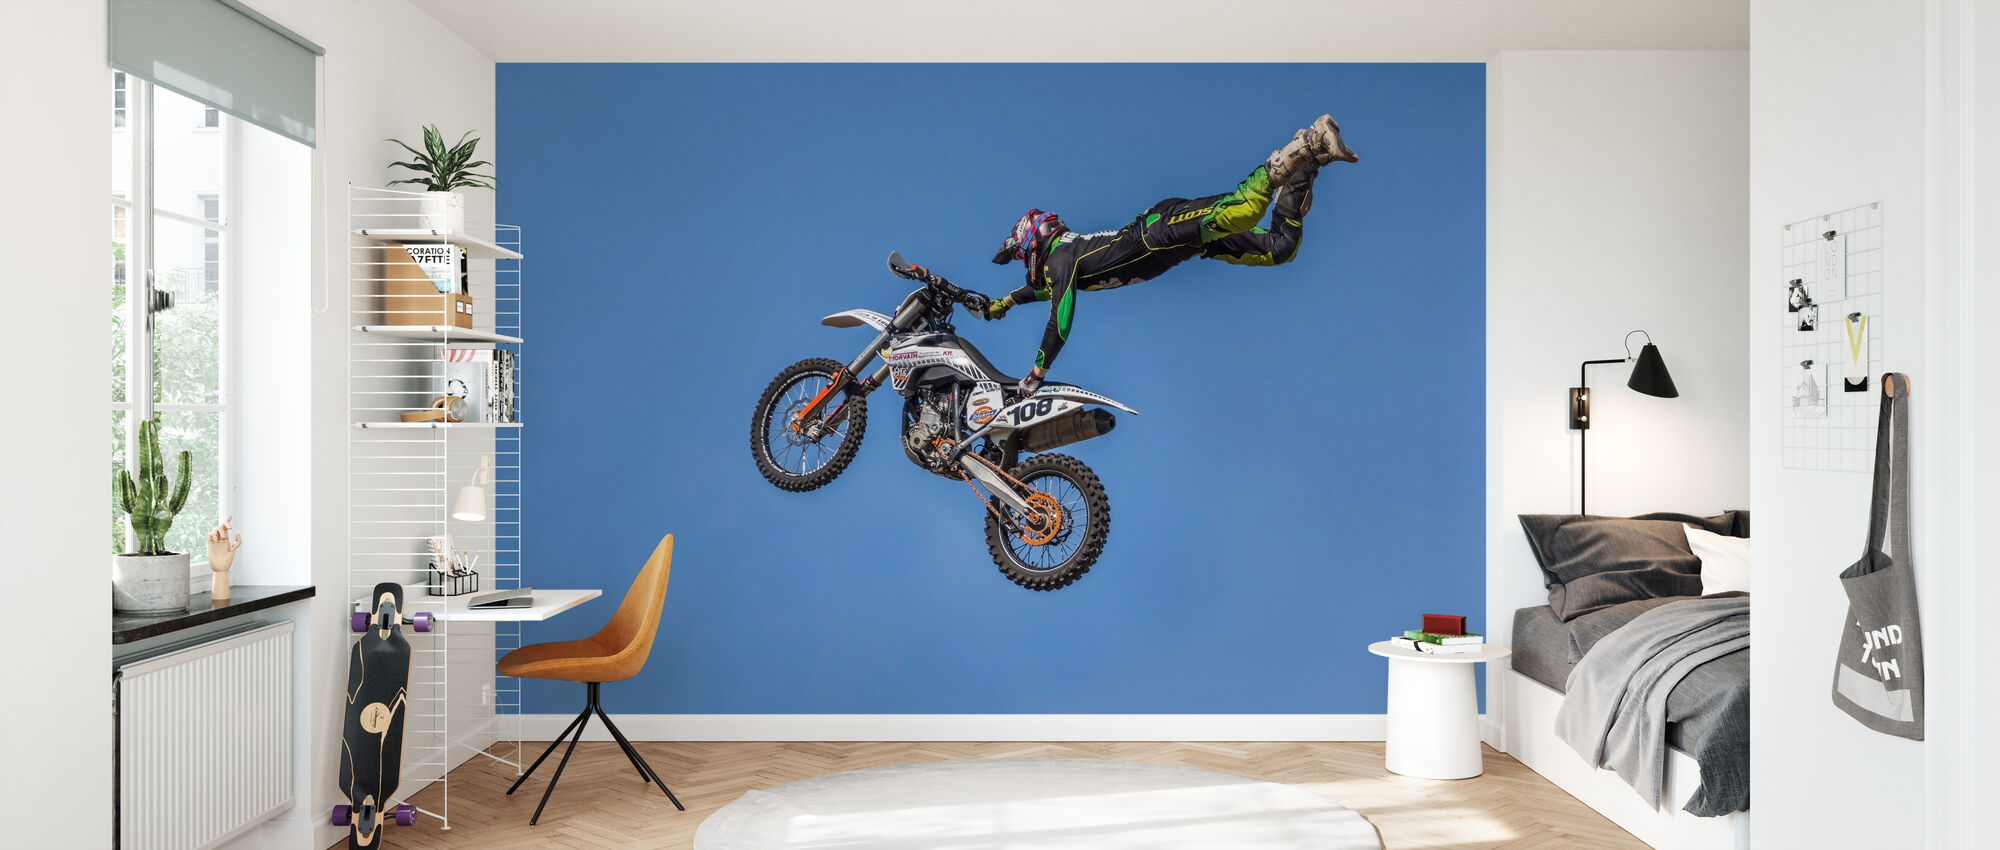 Extreme Motorcycle Sports - Wallpaper - Kids Room